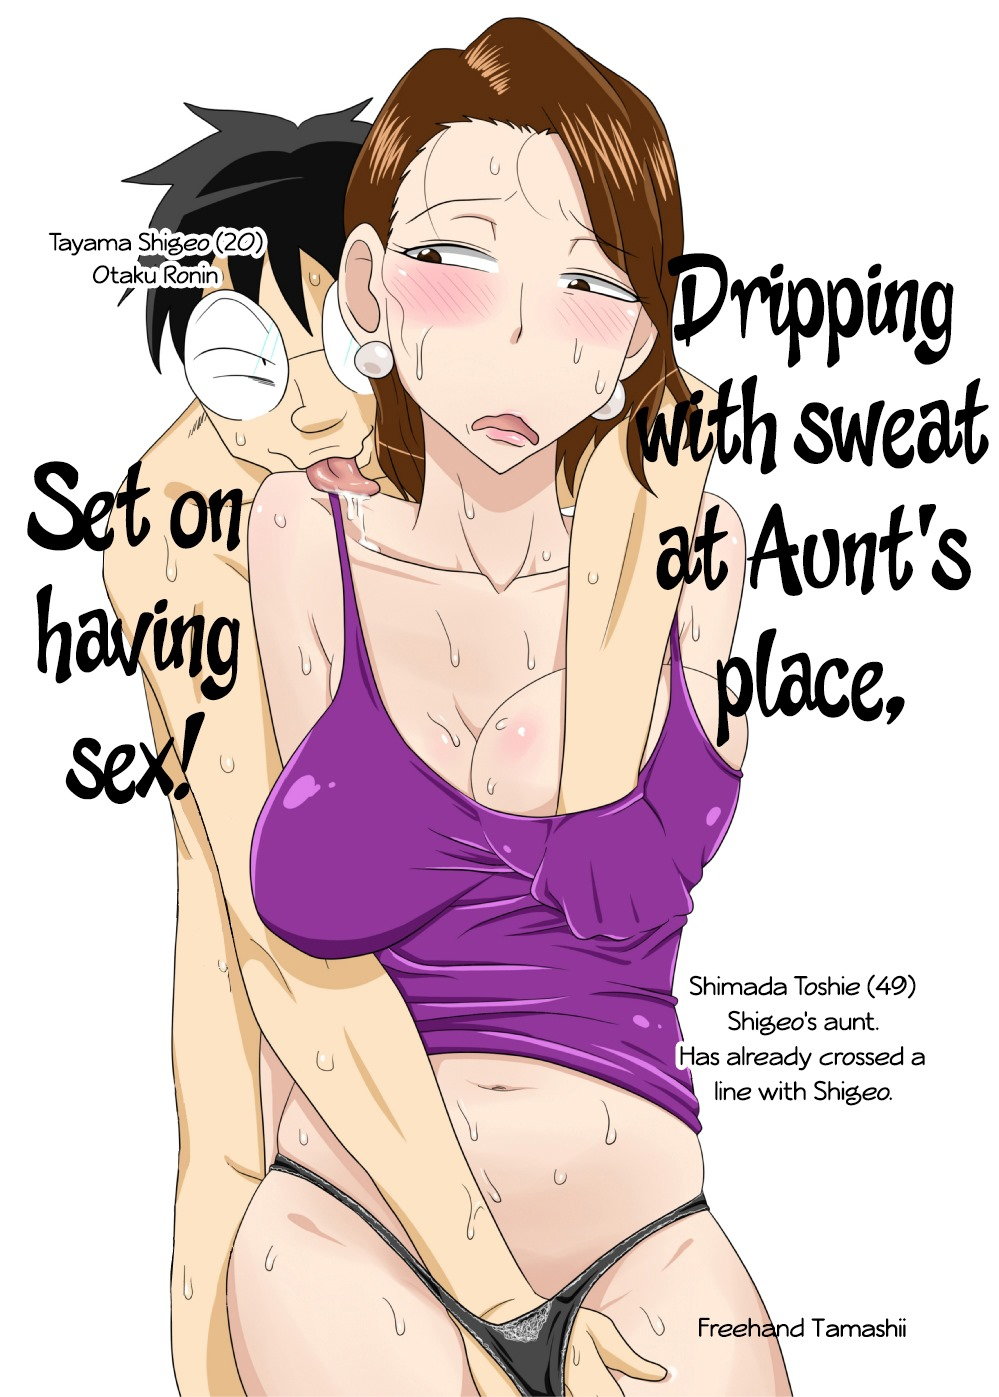 Dripping With Sweat At Aunts Place-Hentai